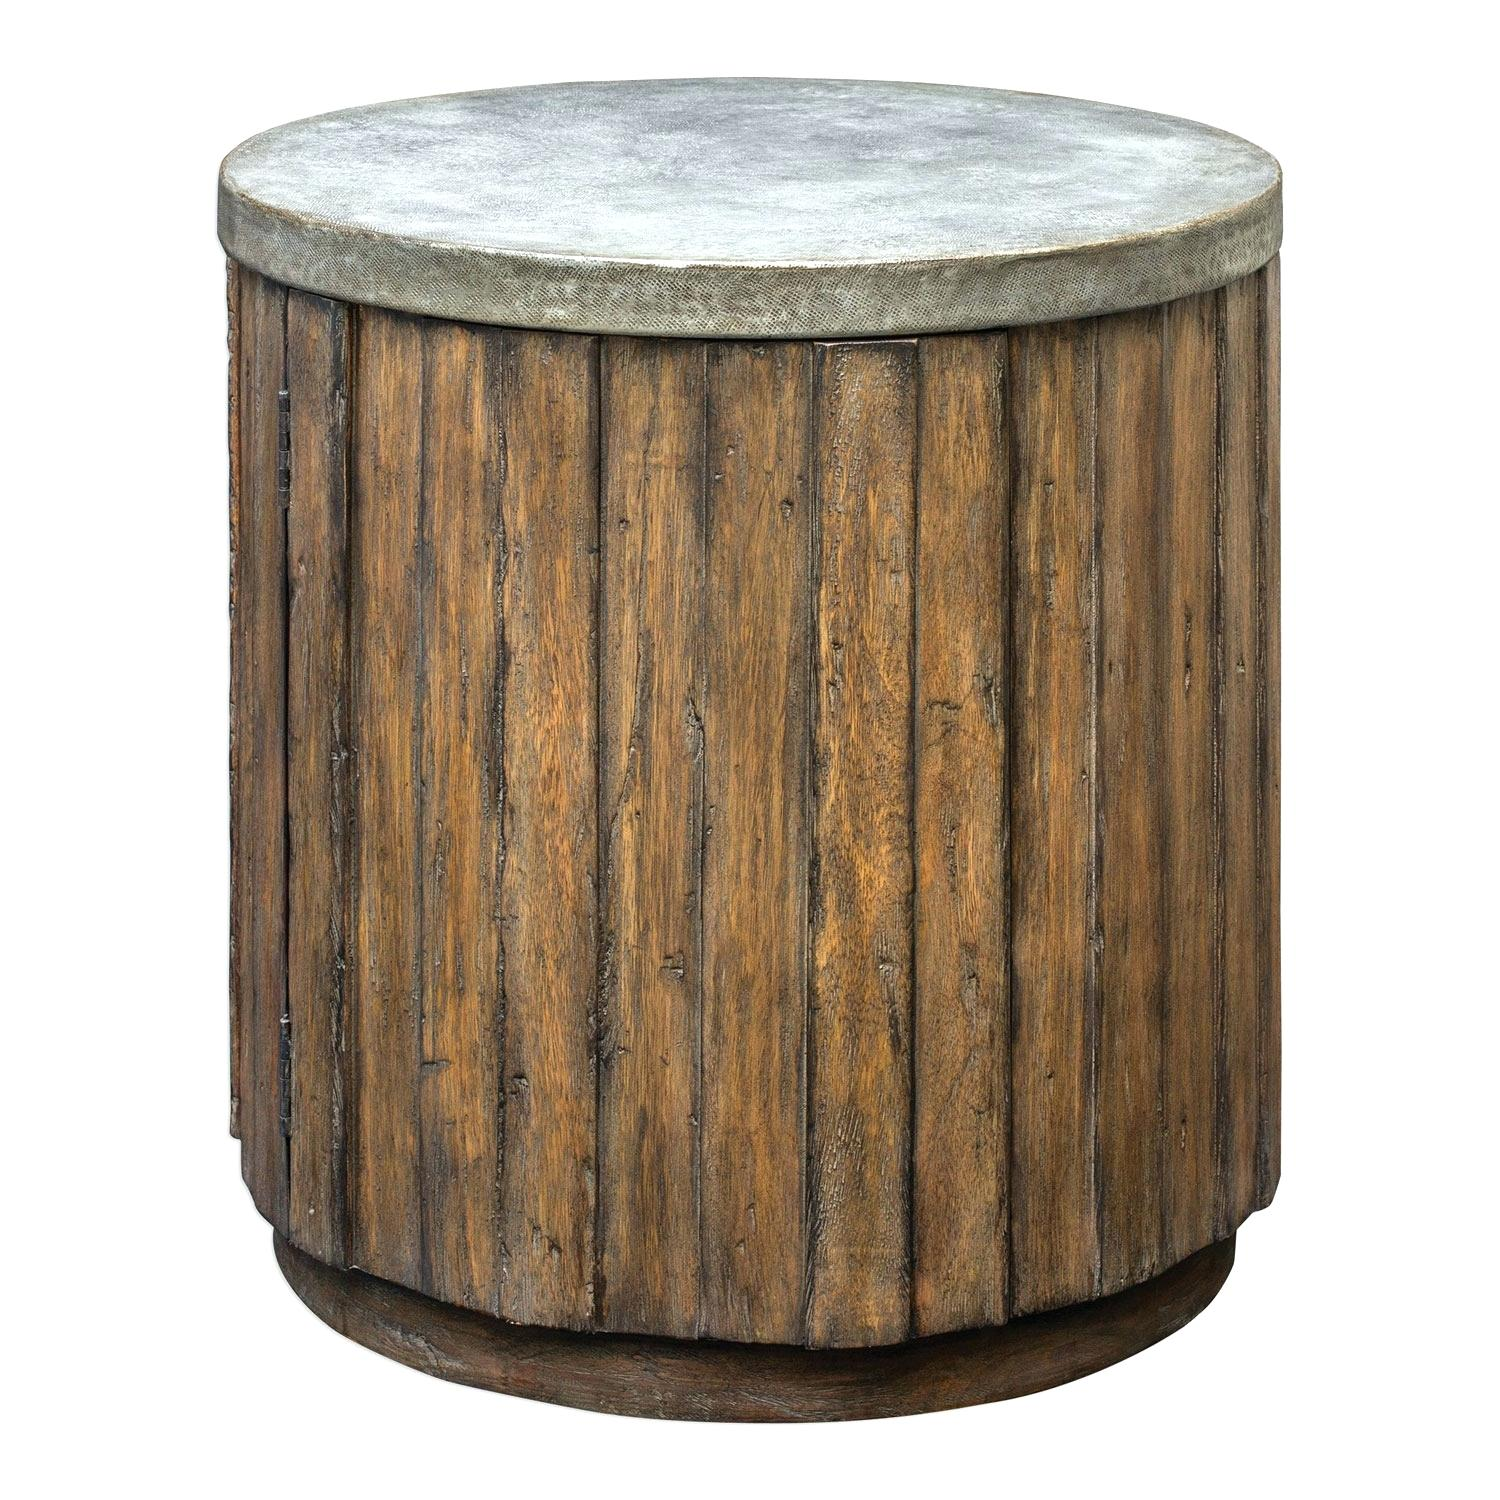 drum accent table manila cylinder brass metal side silver threshold entrance furniture long thin antique tables with drawers end toronto tall skinny reclaimed oak reviews harvest